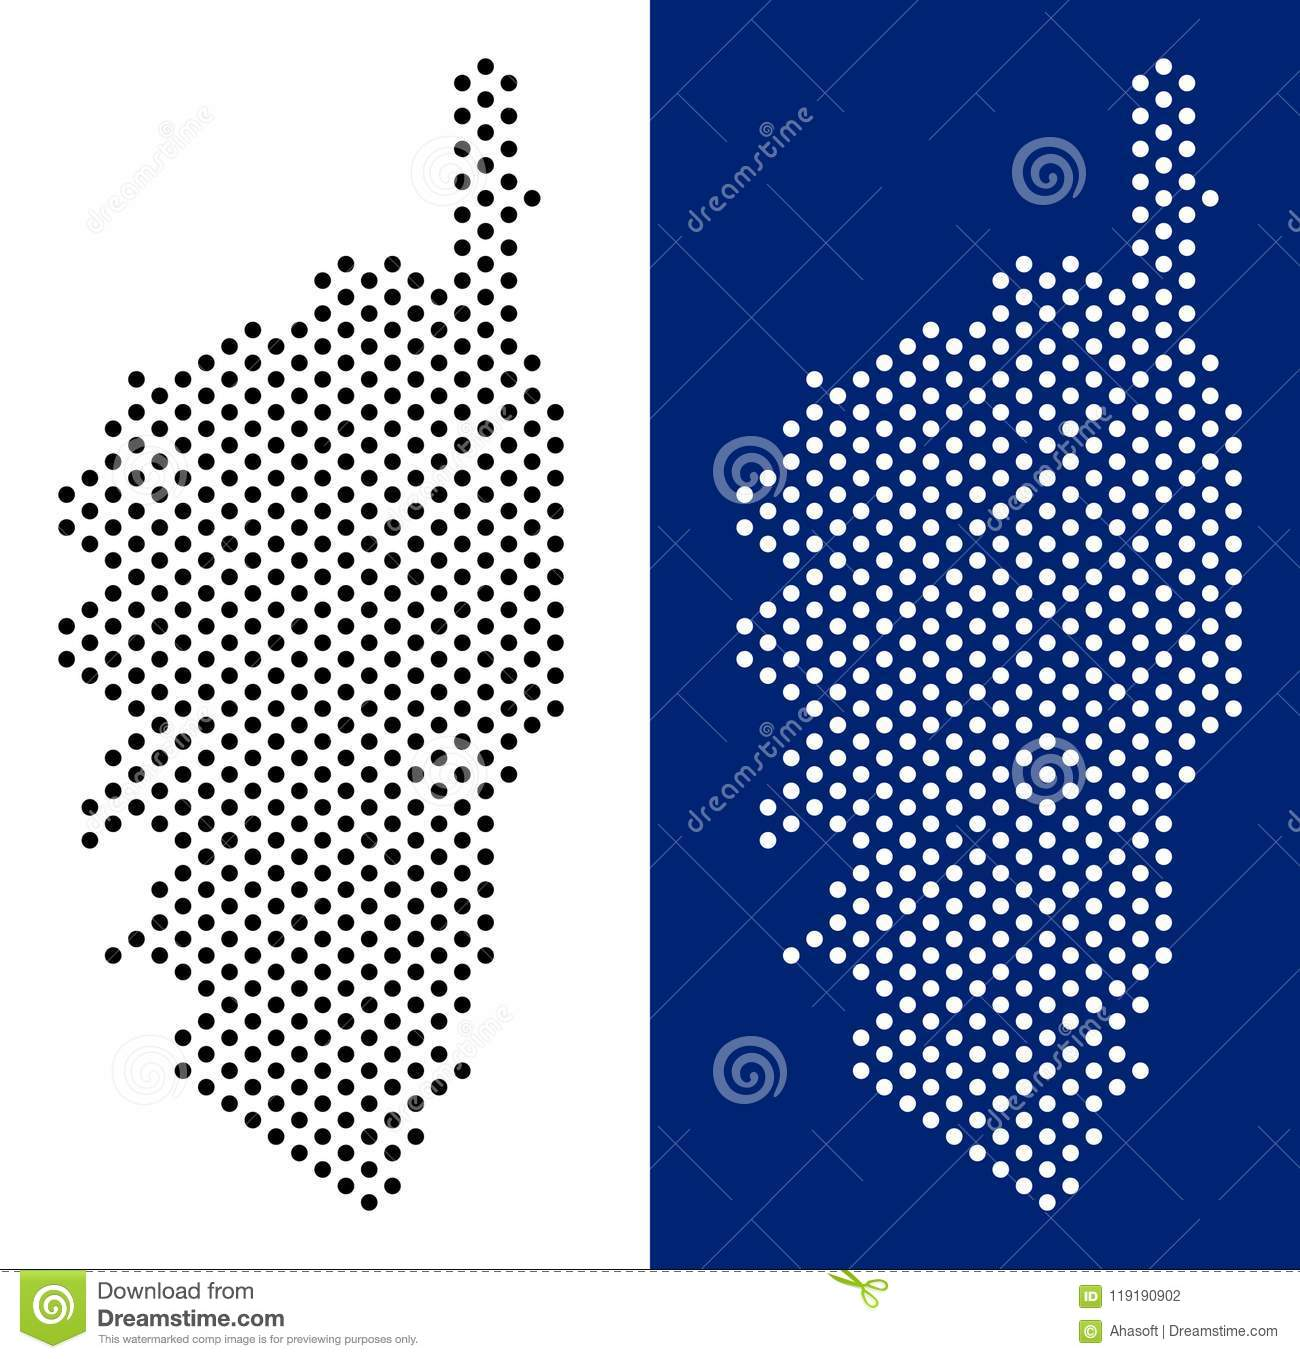 Dot Corsica France Island Map Stock Vector Illustration Of Dotted